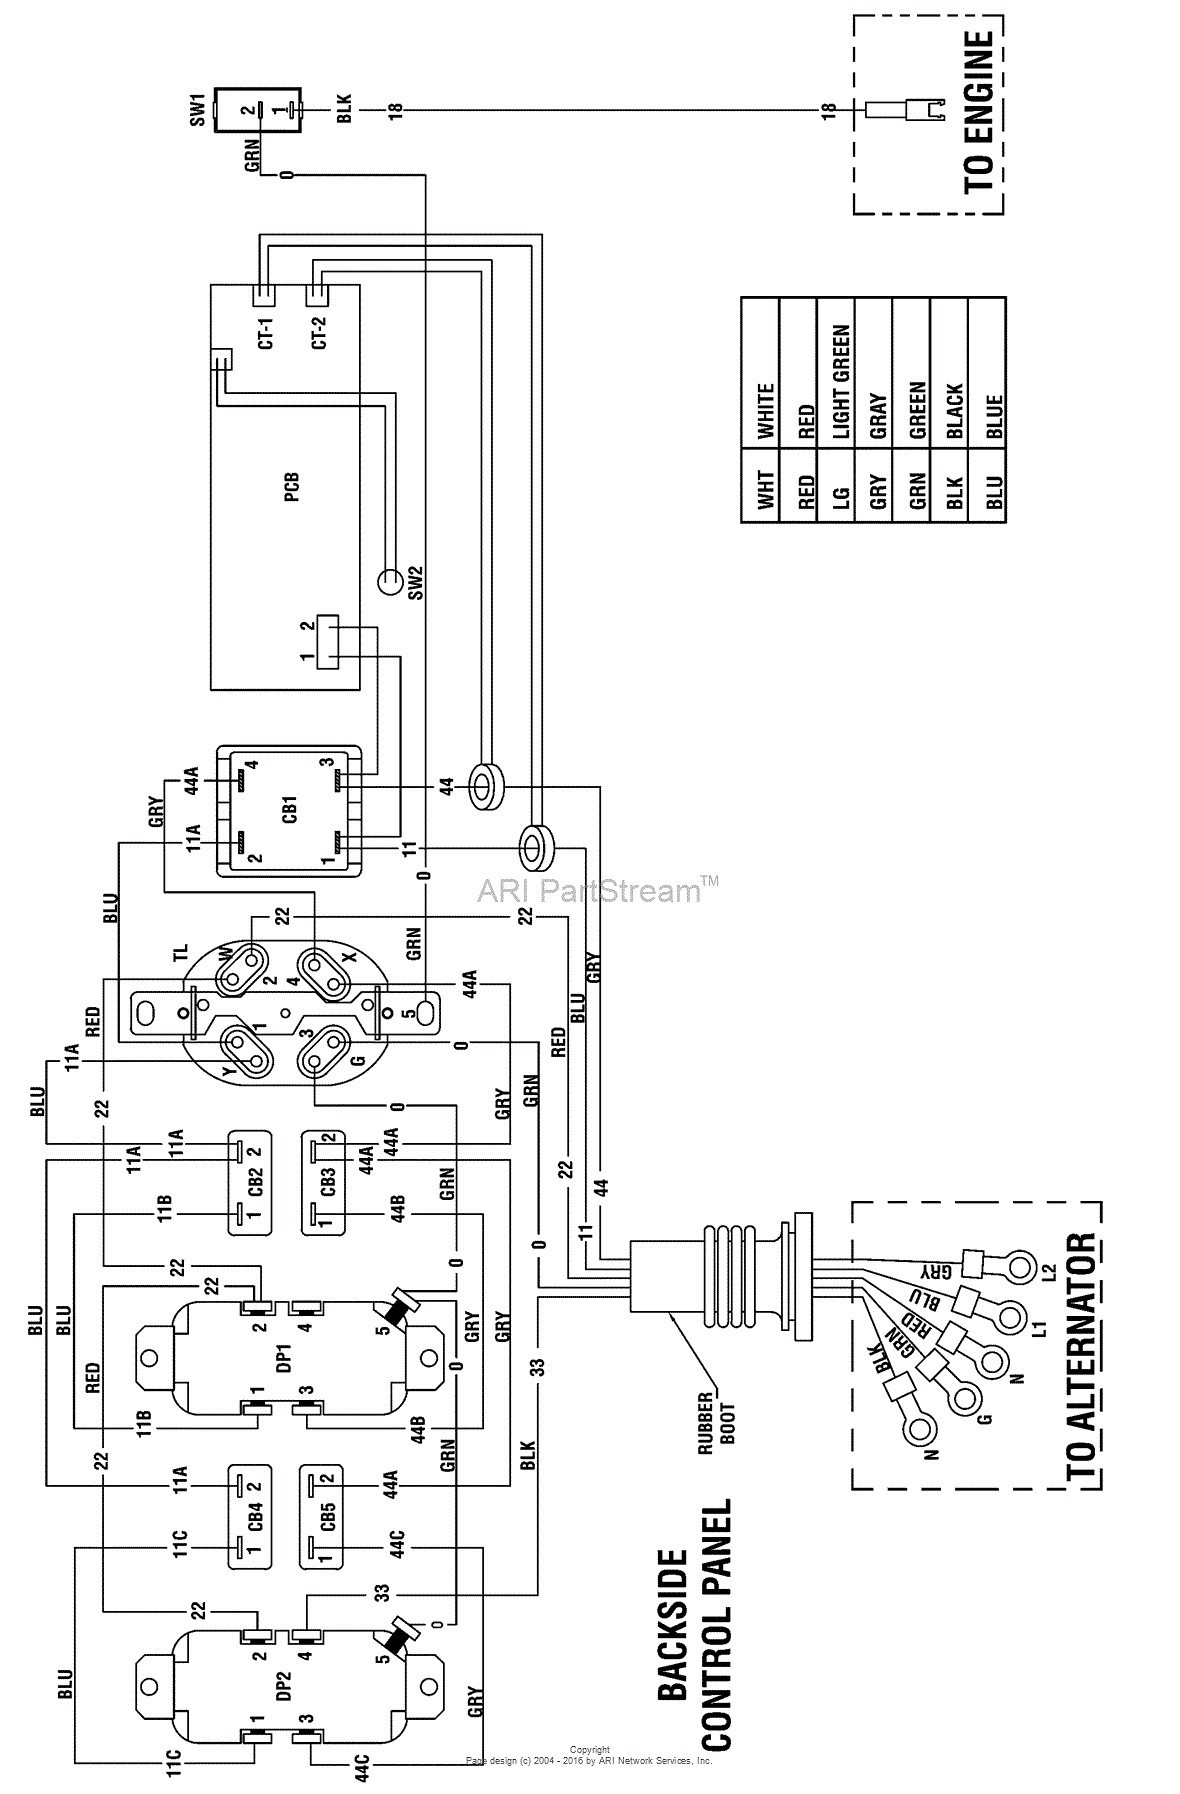 briggs and stratton magneto wiring diagram 1996 dodge dakota engine electrical schematic library for